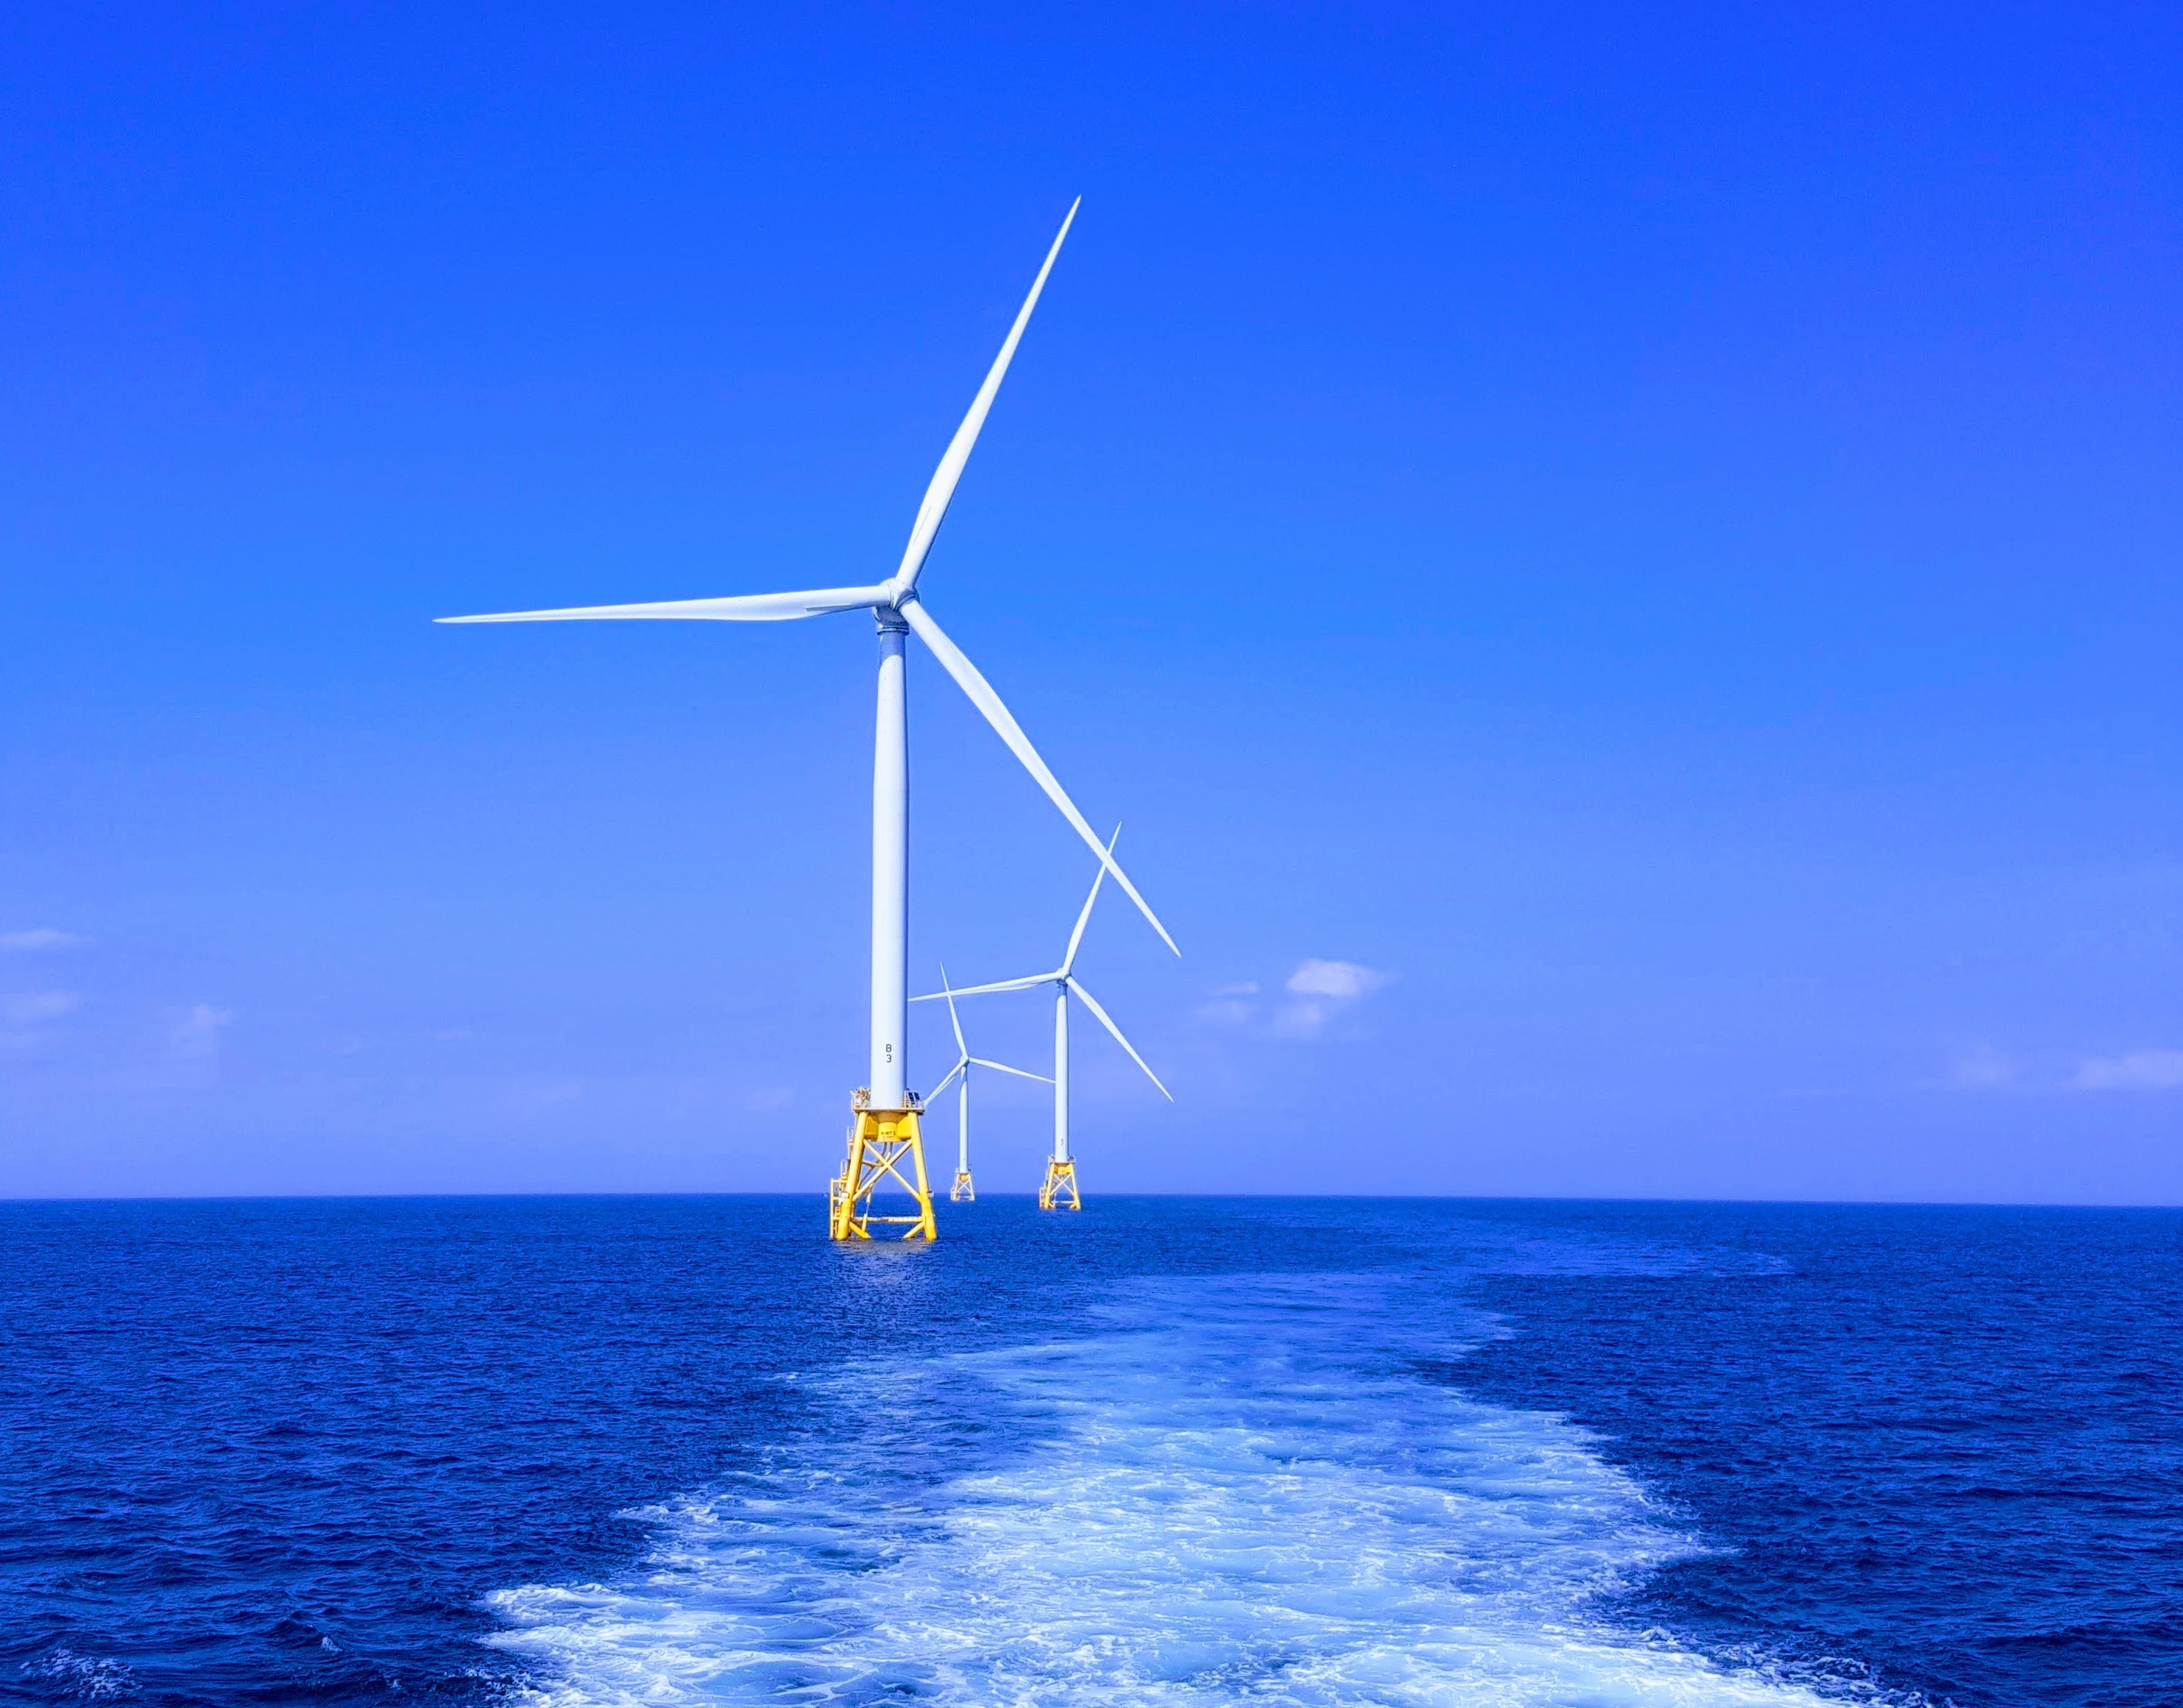 shaun-dakin-nY_RHD44e_o-unsplash-1 1st training pill Q&A live session: Specifying an integrated data processing platform for optimal O&M of offshore wind turbines